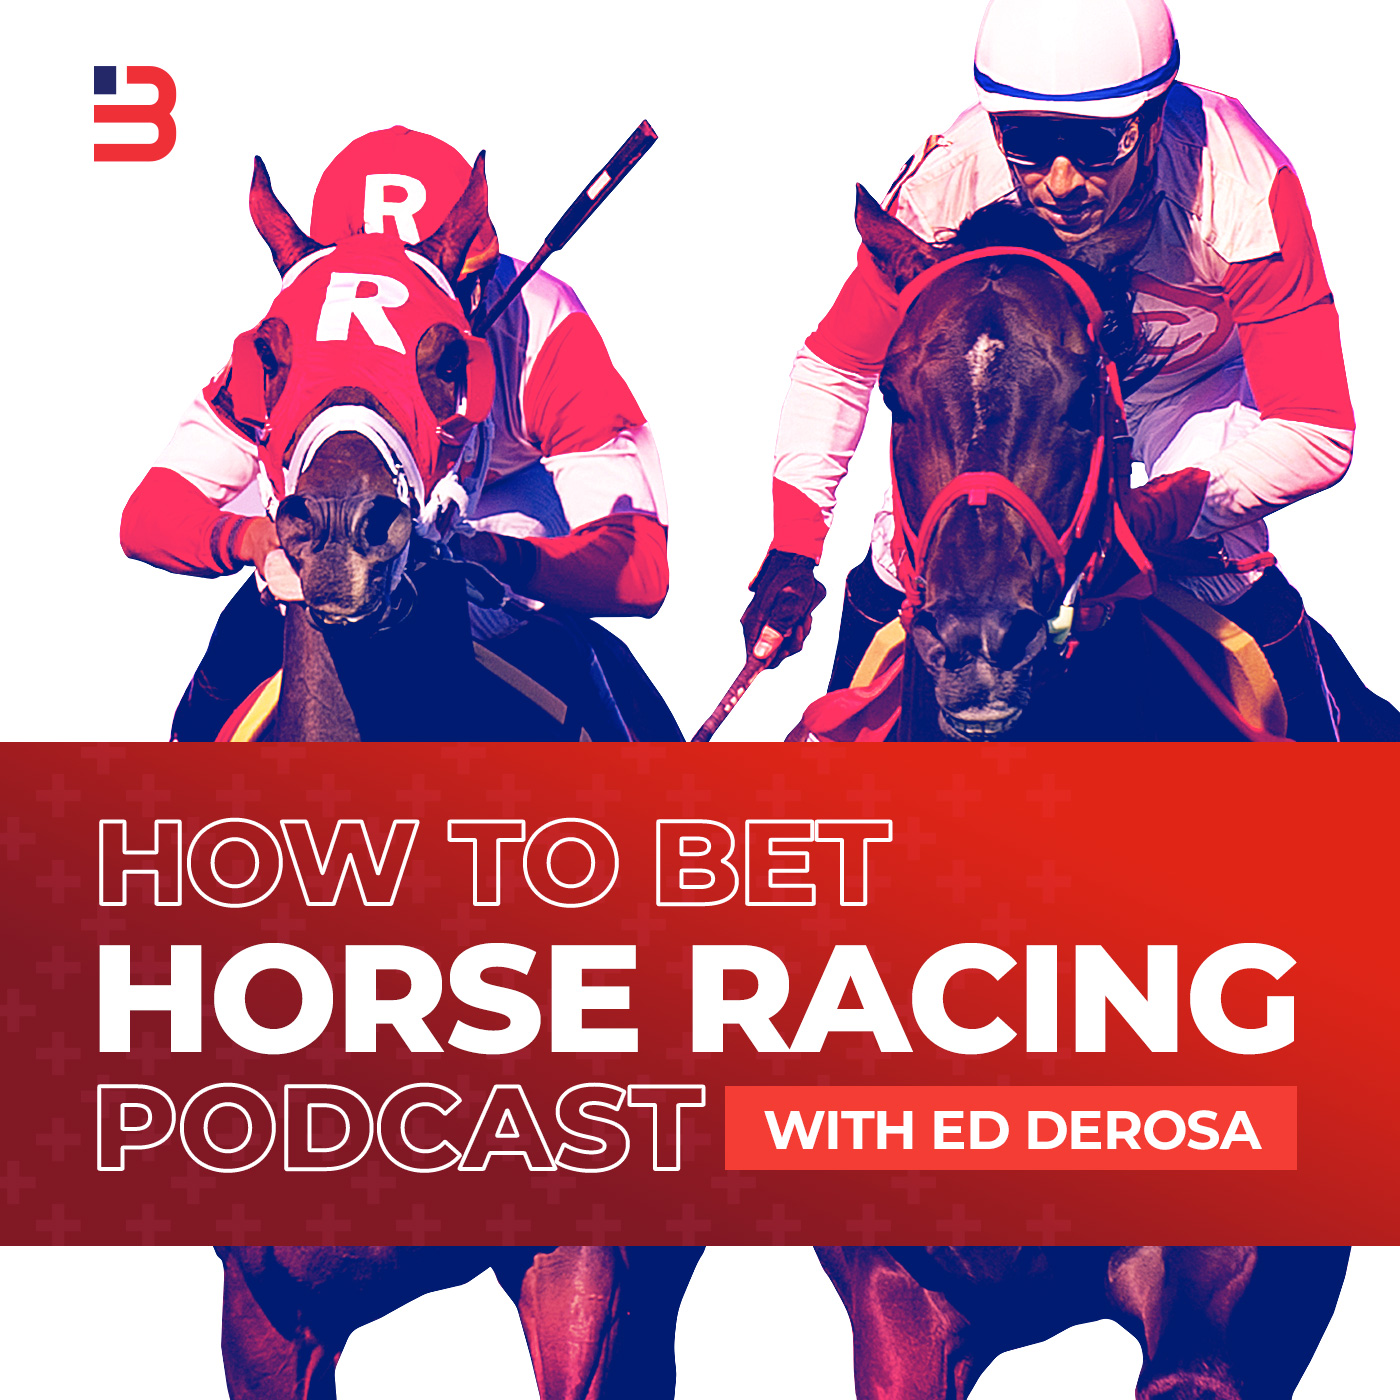 How To Bet Horse Racing Podcast | Listen via Stitcher for Podcasts